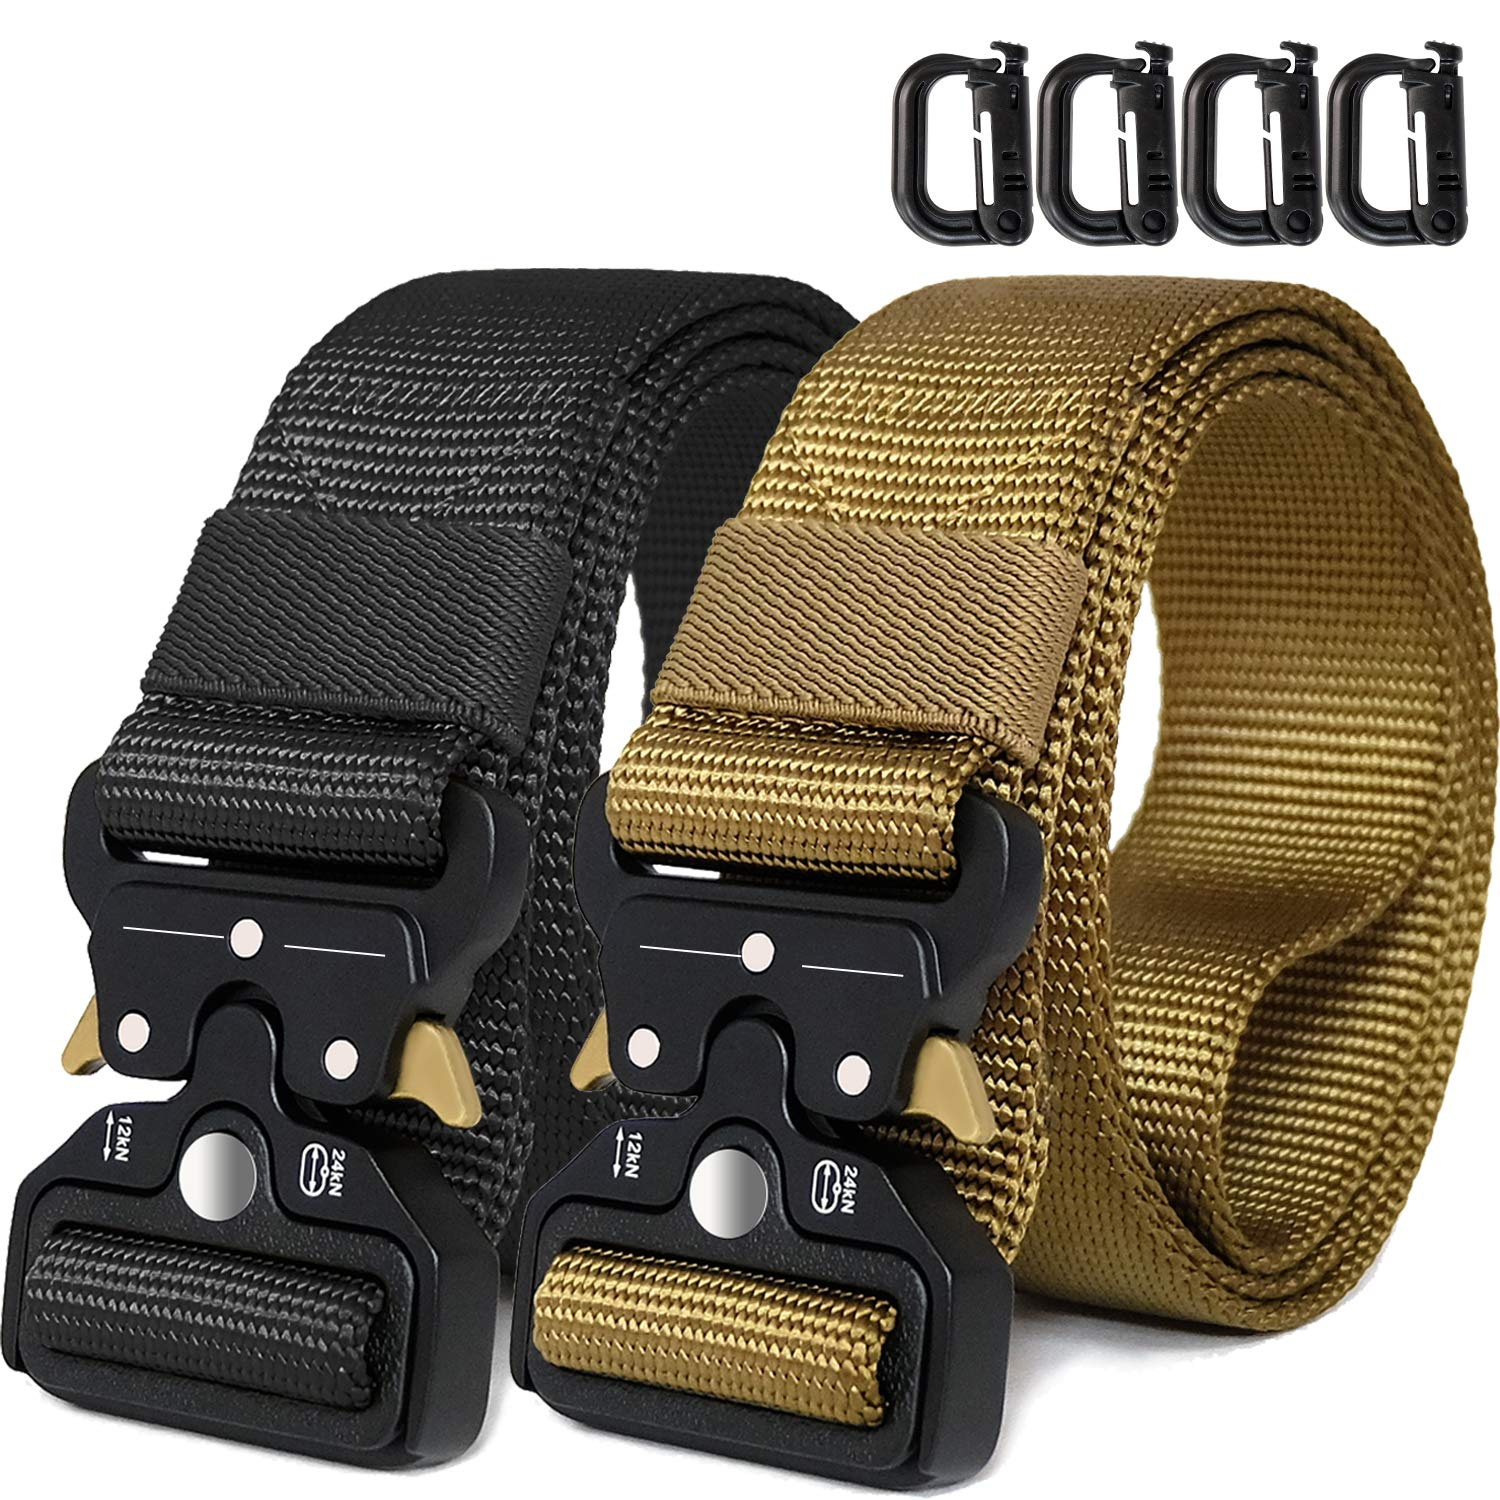 WONDAY Tactical Belt, Heavy Duty Belt 2 Pack 1.5 Inch Adjustable Military Style Nylon Belts with Metal Buckle